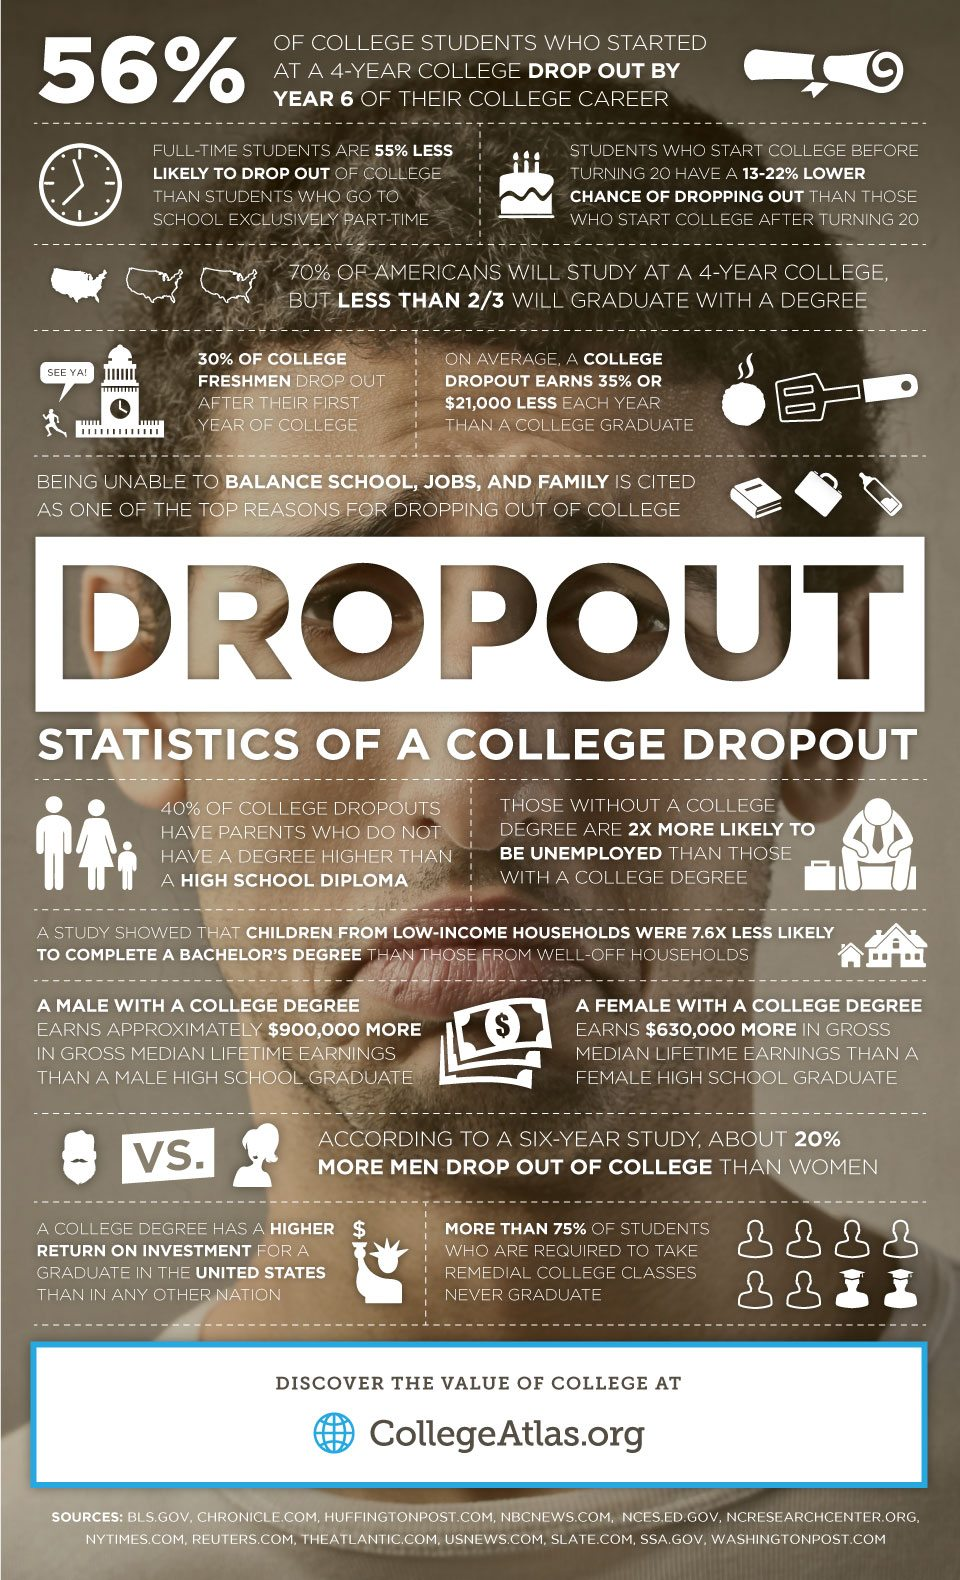 College Dropout Rates and Statistics